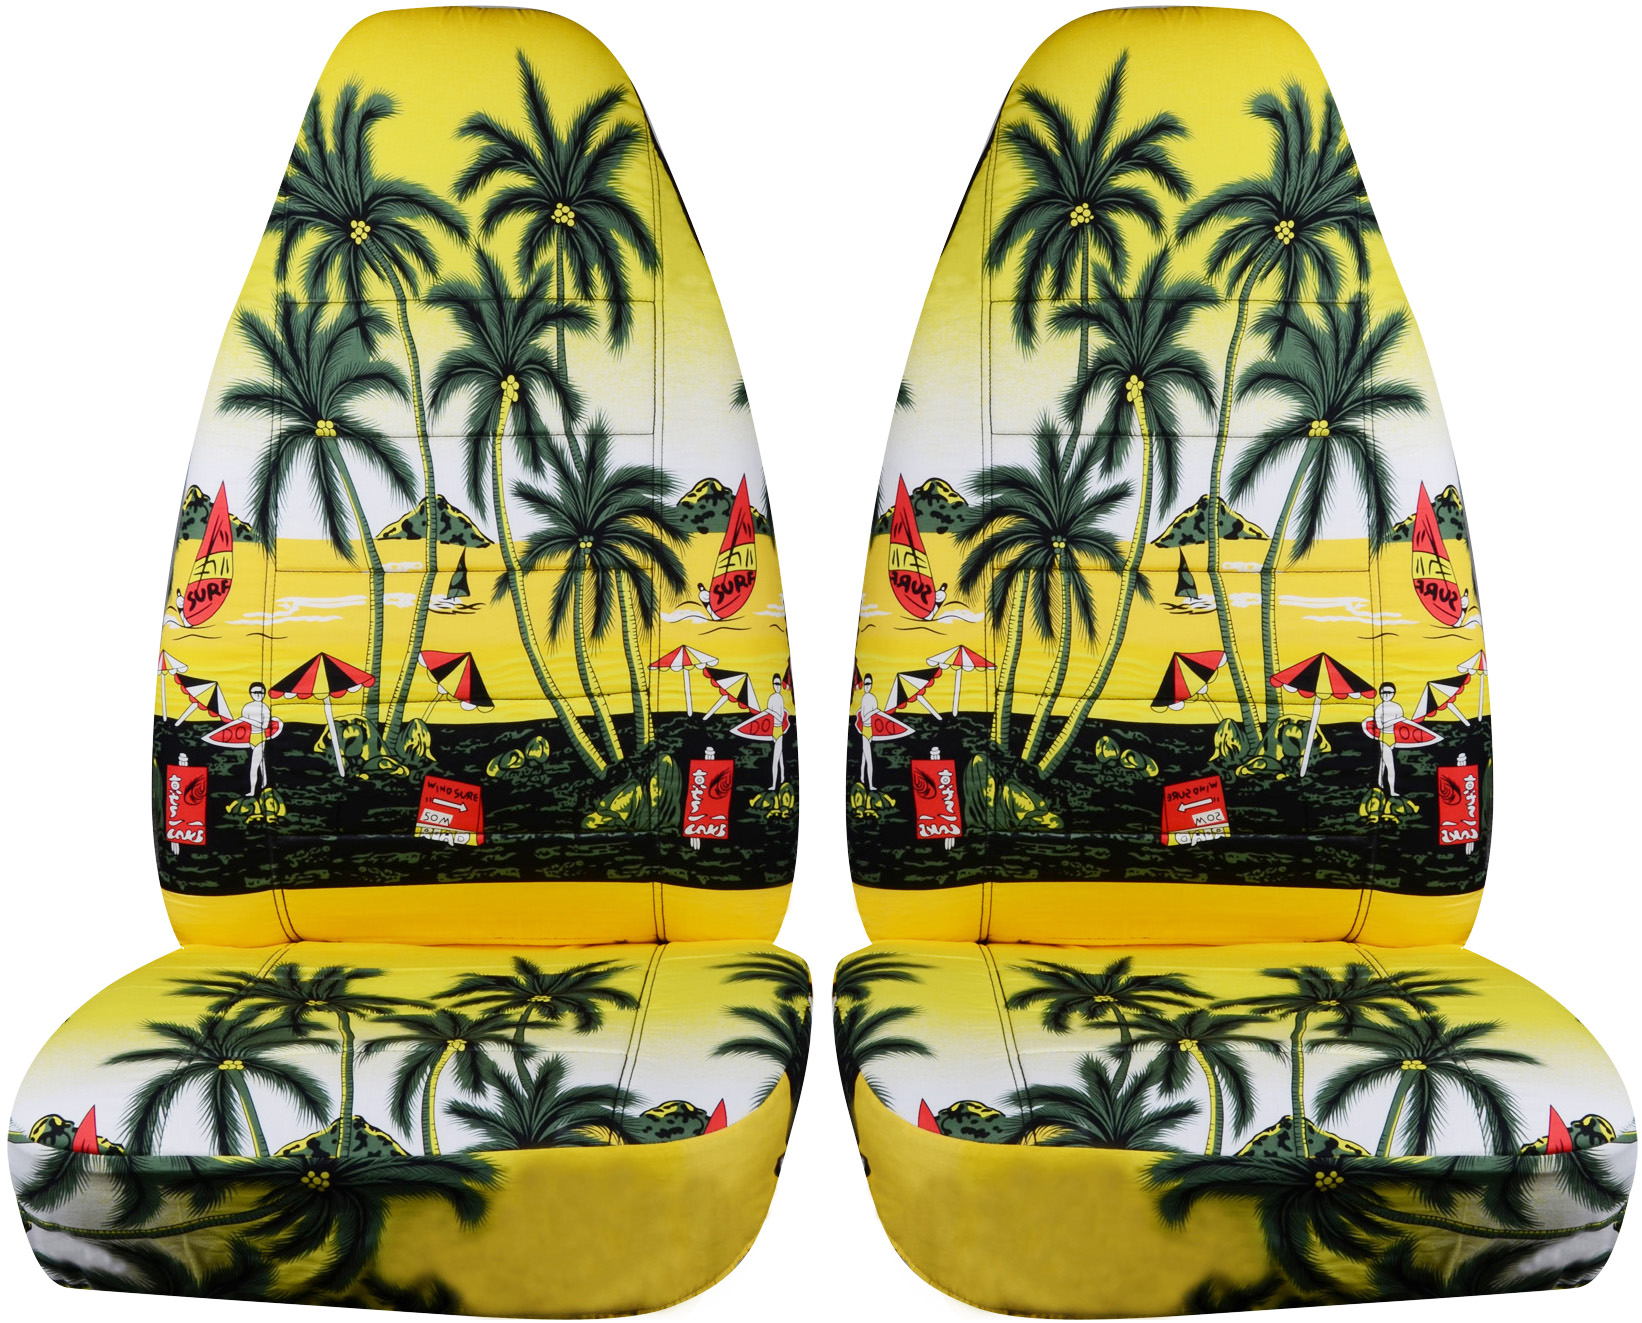 Hawaiian print car seat covers front semi custom blueredyellow yellow w palm tree hawaiian car seat covers izmirmasajfo